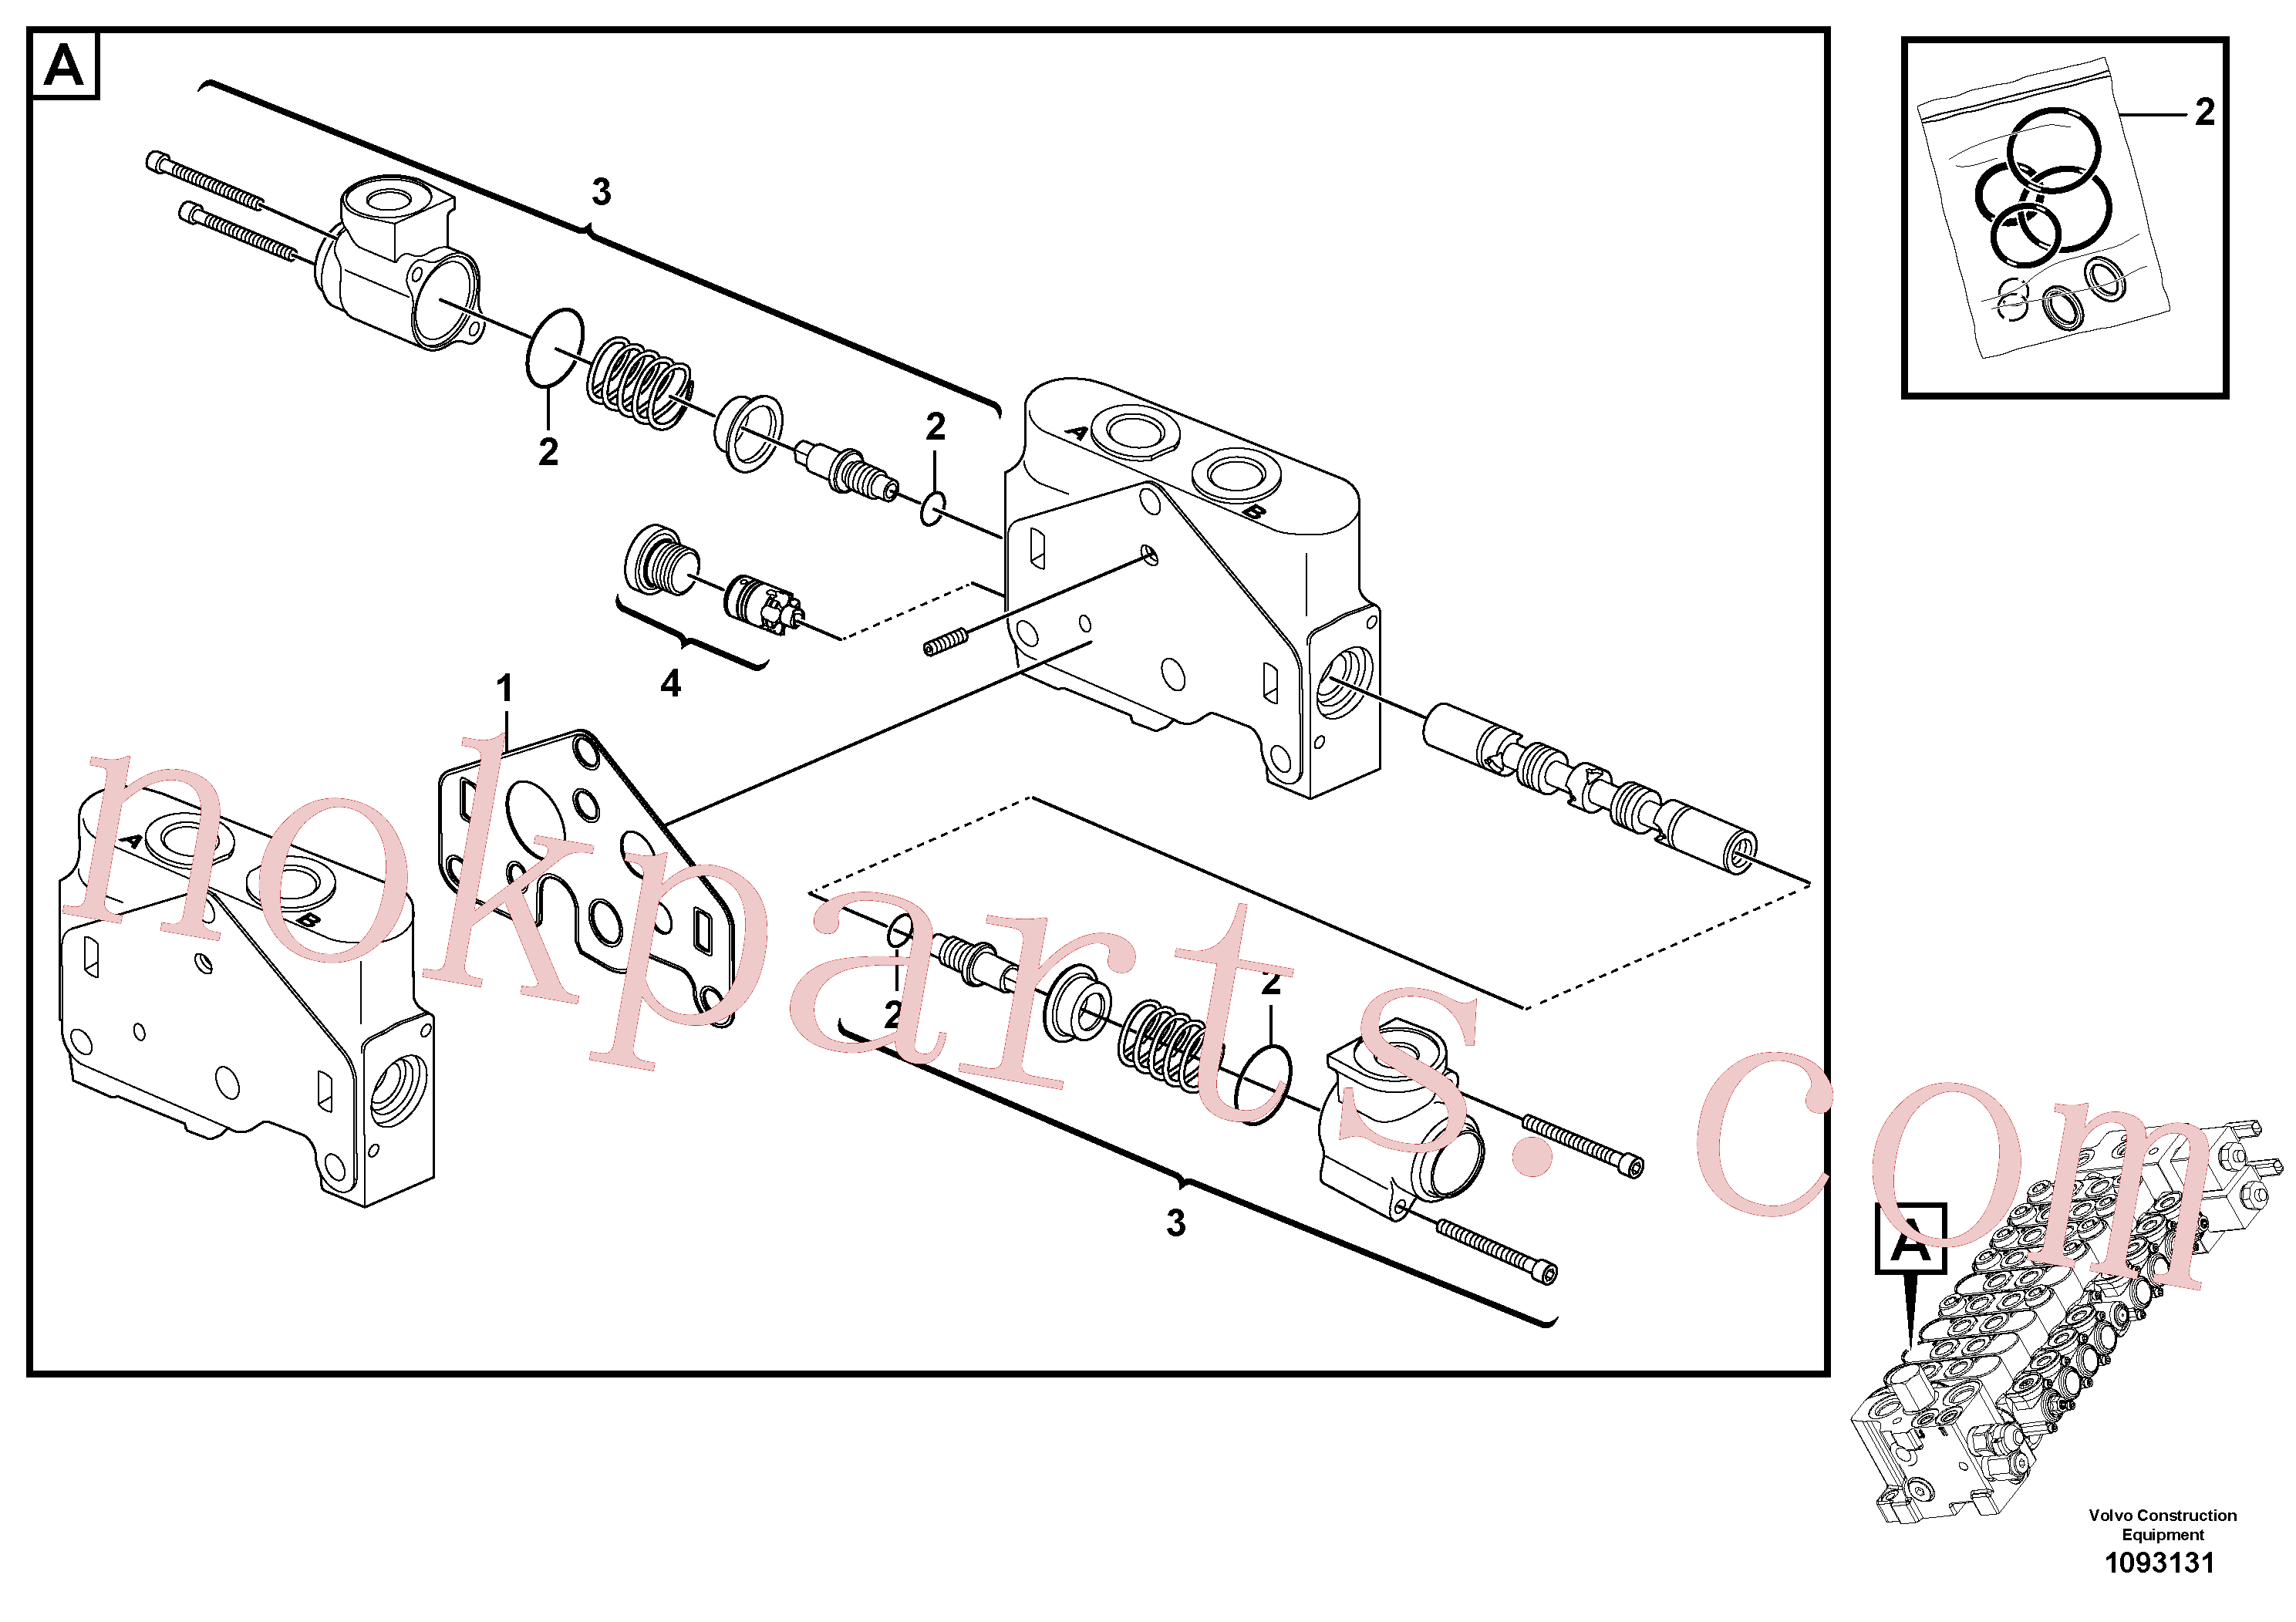 VOE15182858 for Volvo Valve section(1093131 assembly)